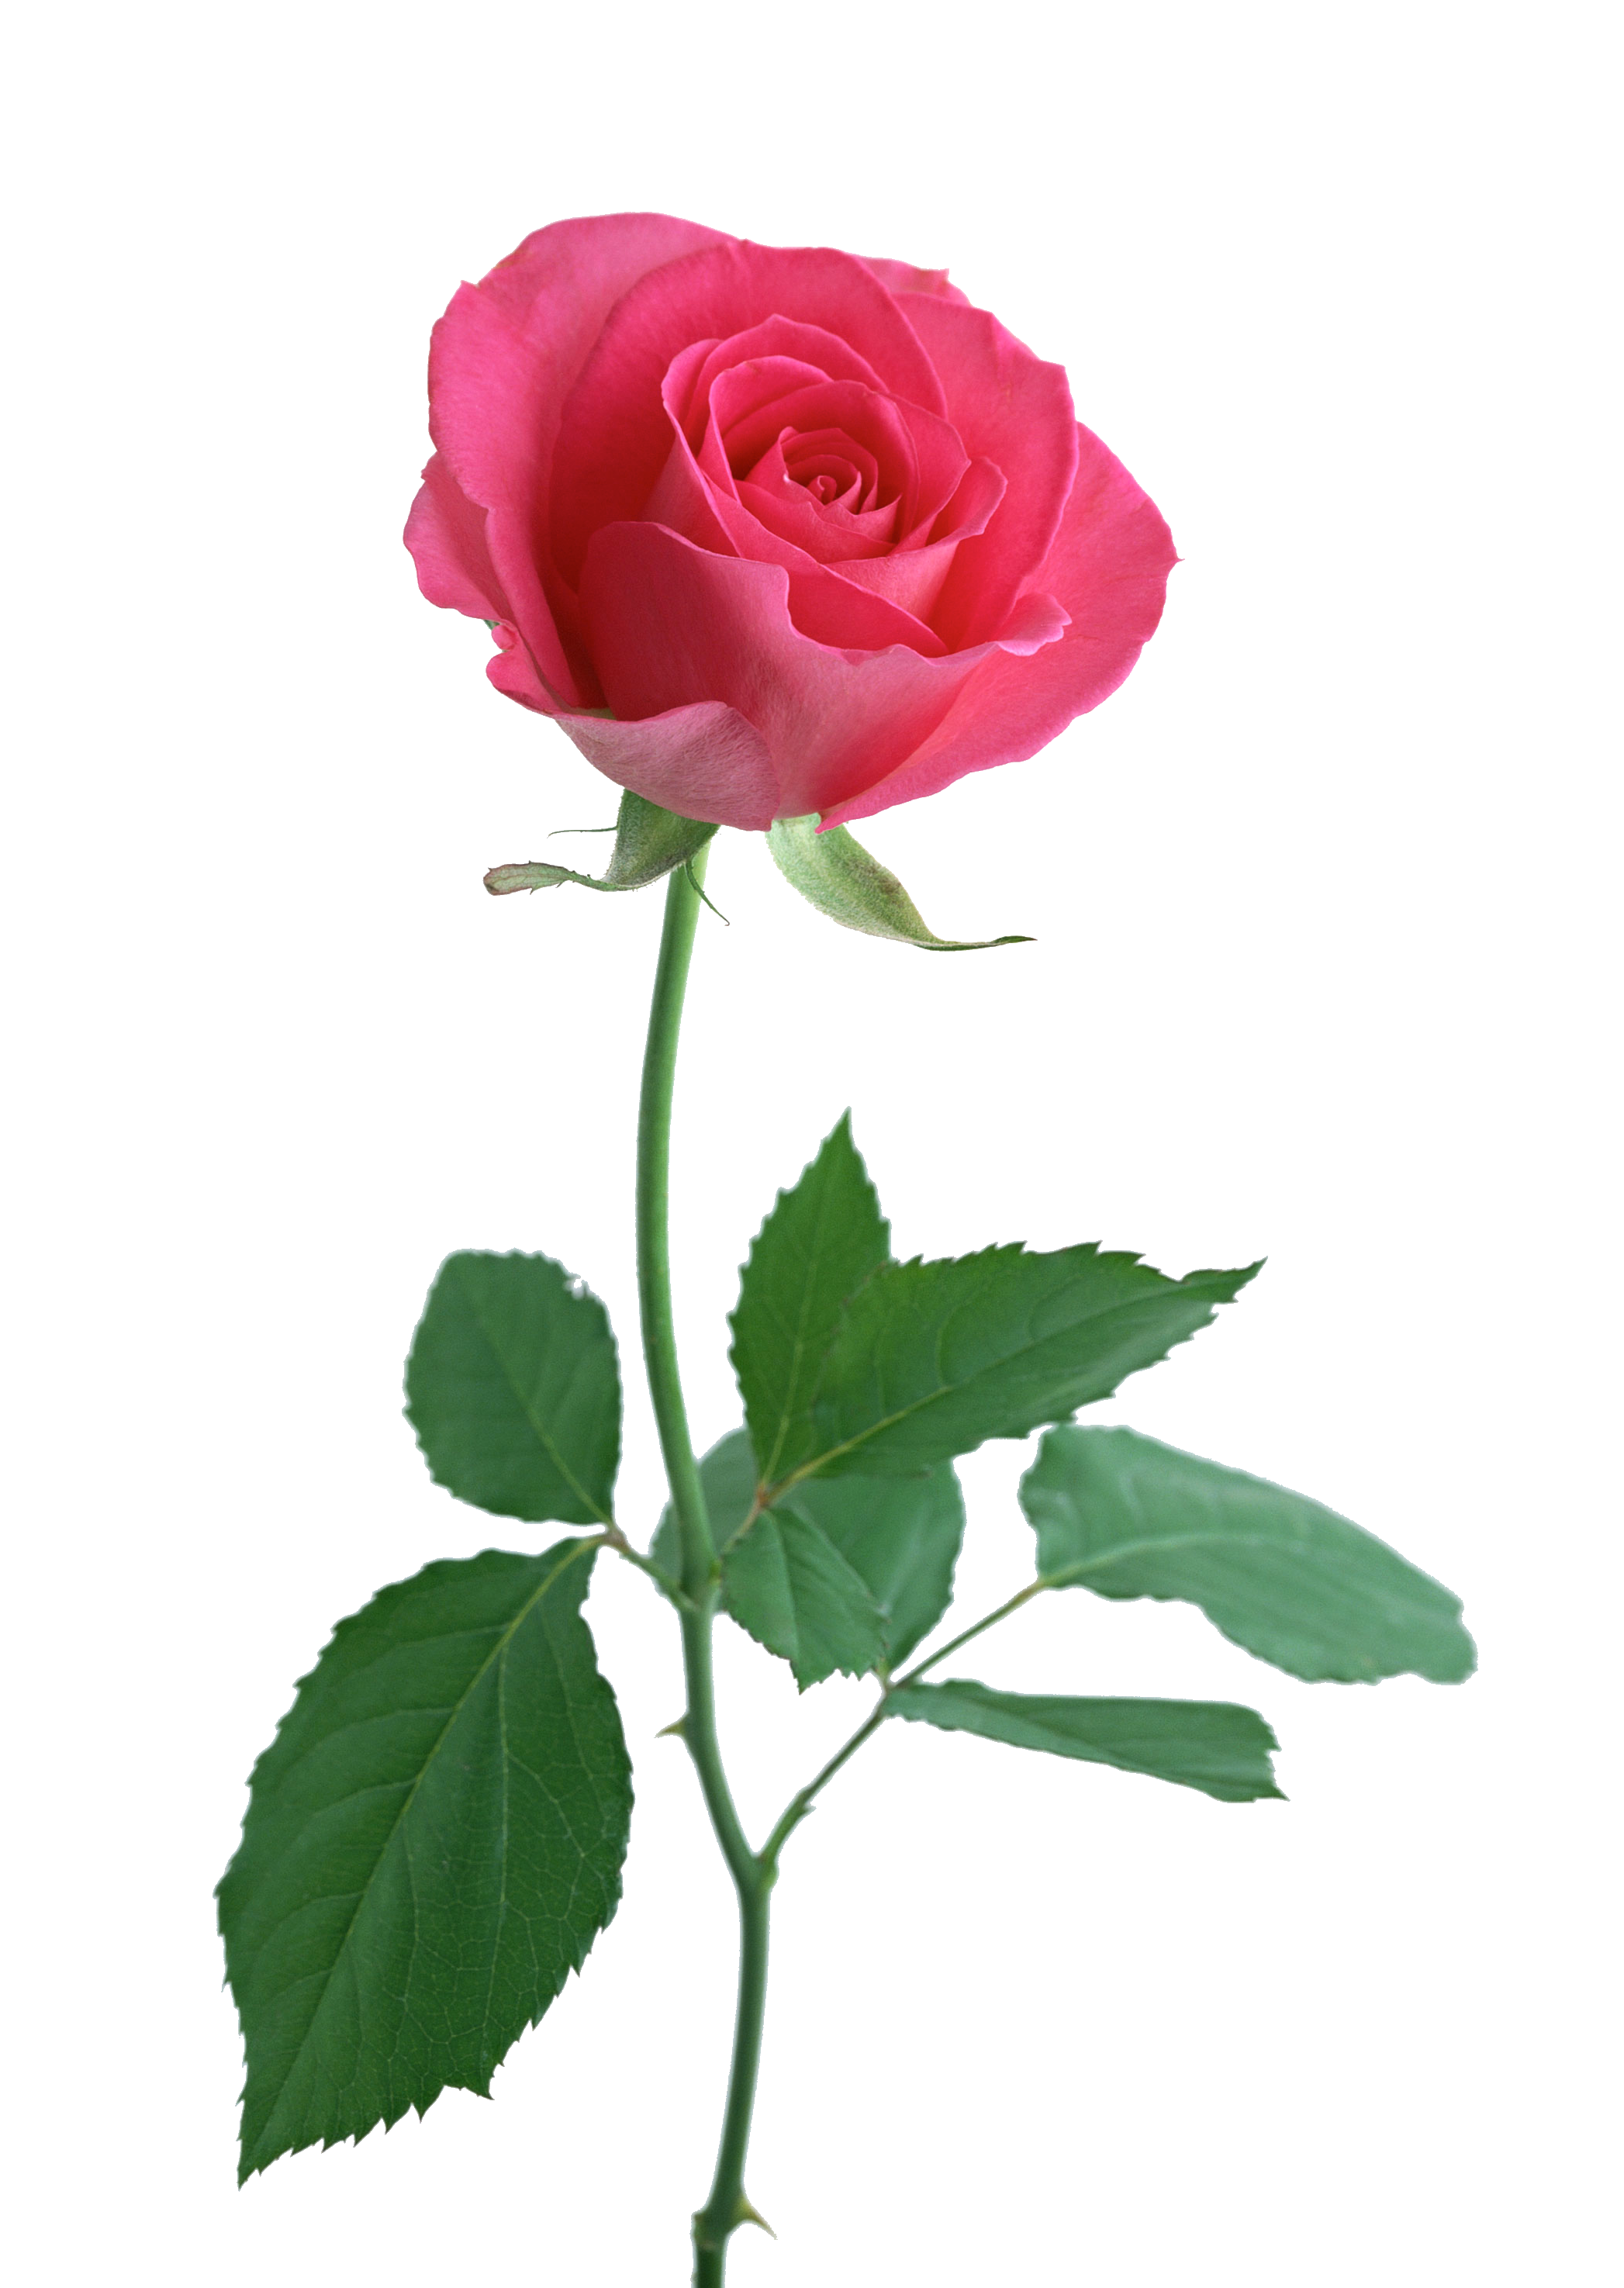 Pink Rose clipart stalk The tattoo! rose rose like